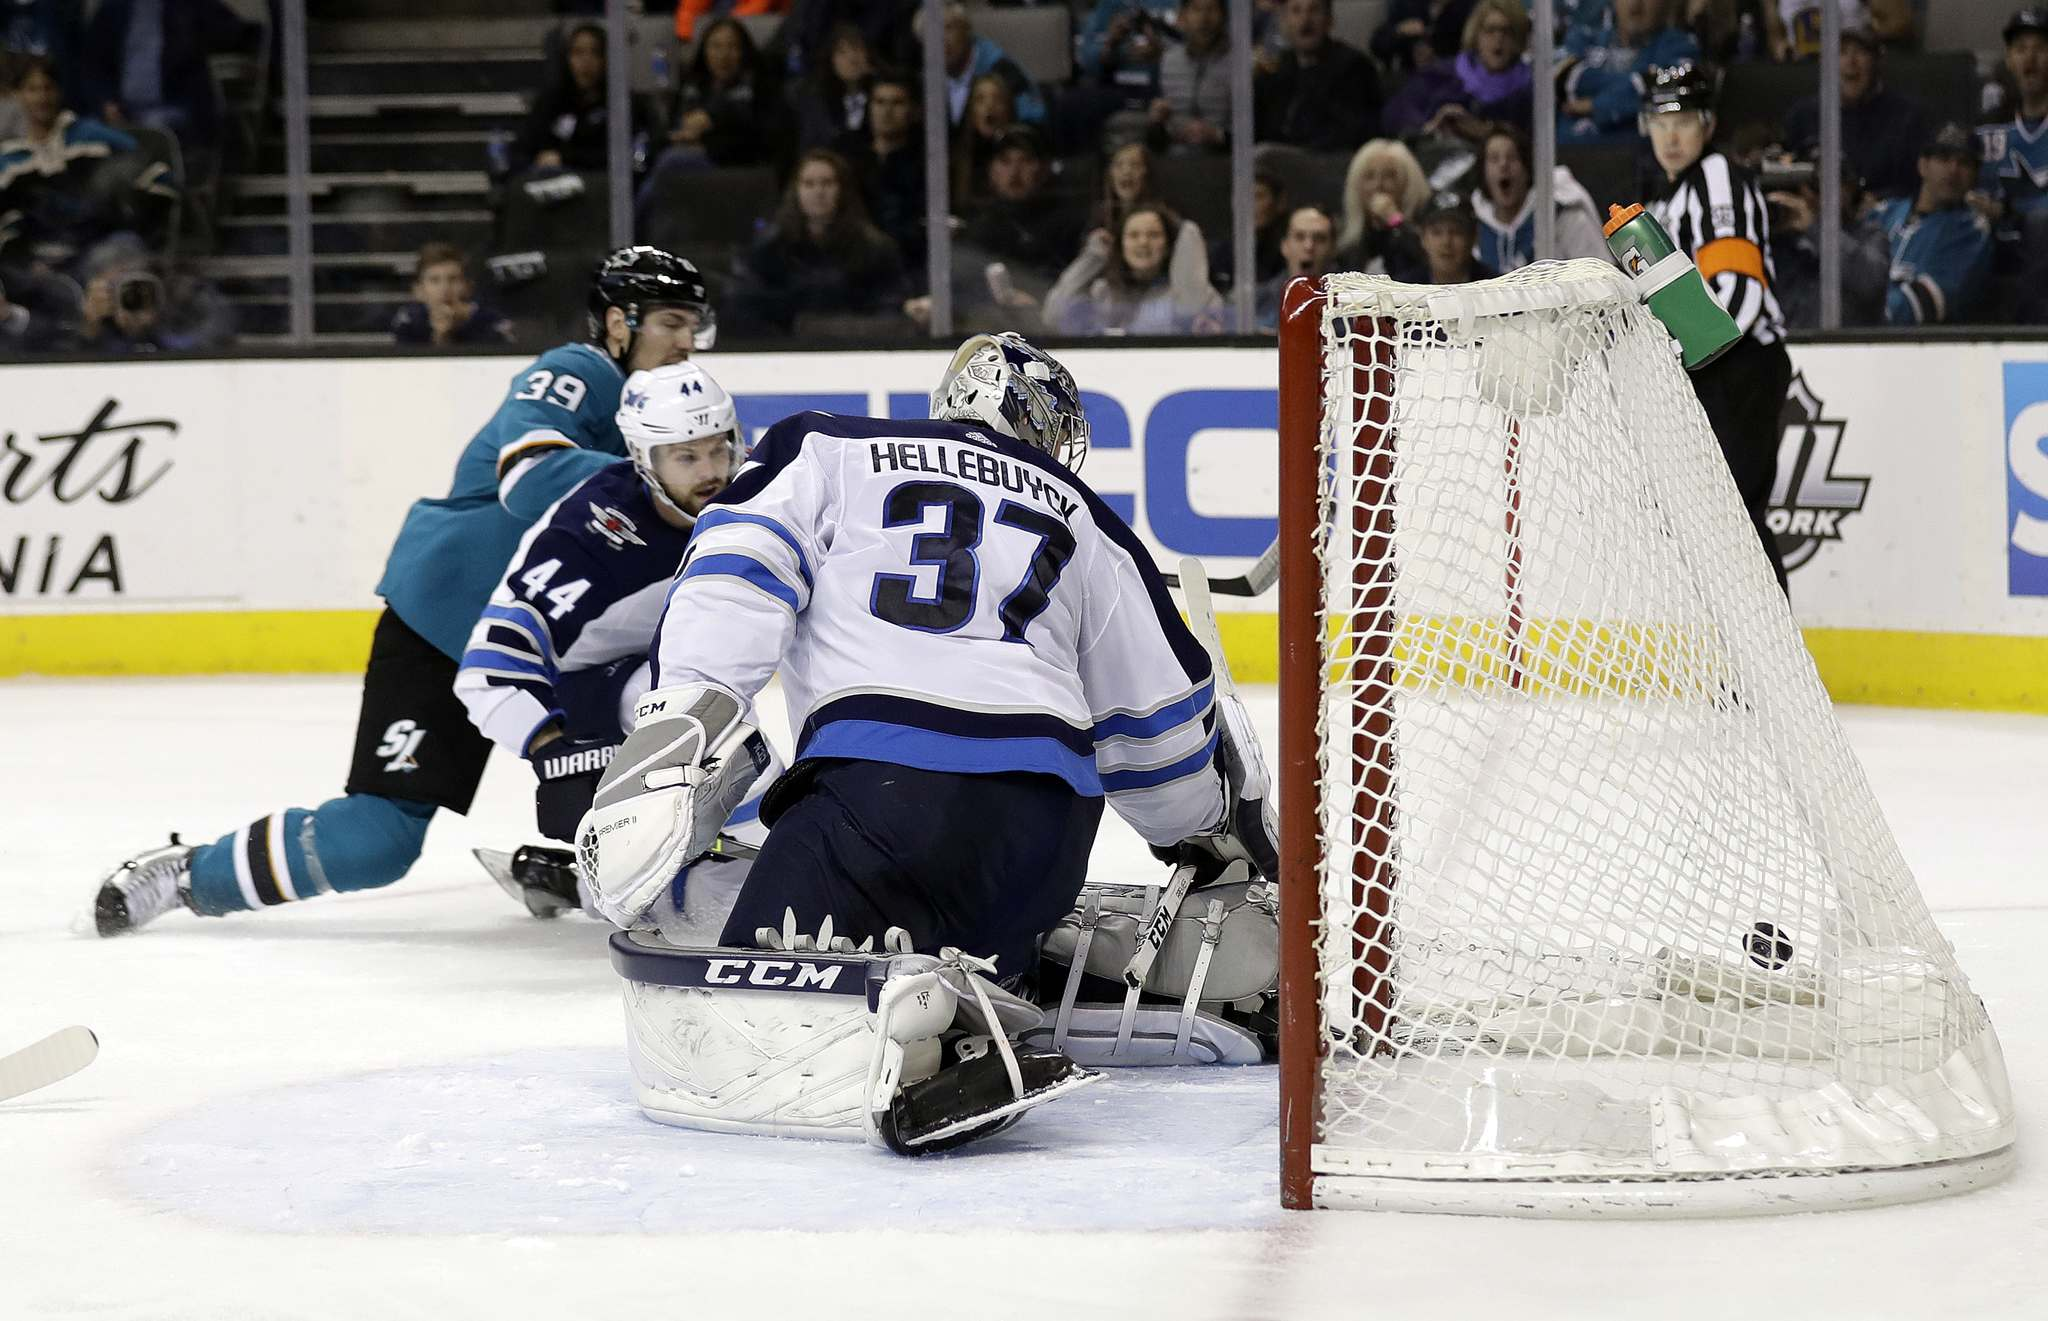 (AP Photo/Marcio Jose Sanchez)</p><p>Winnipeg Jets goaltender Connor Hellebuyck gives up a goal to San Jose Sharks centre Logan Couture, left, during the second period Tuesday.</p>